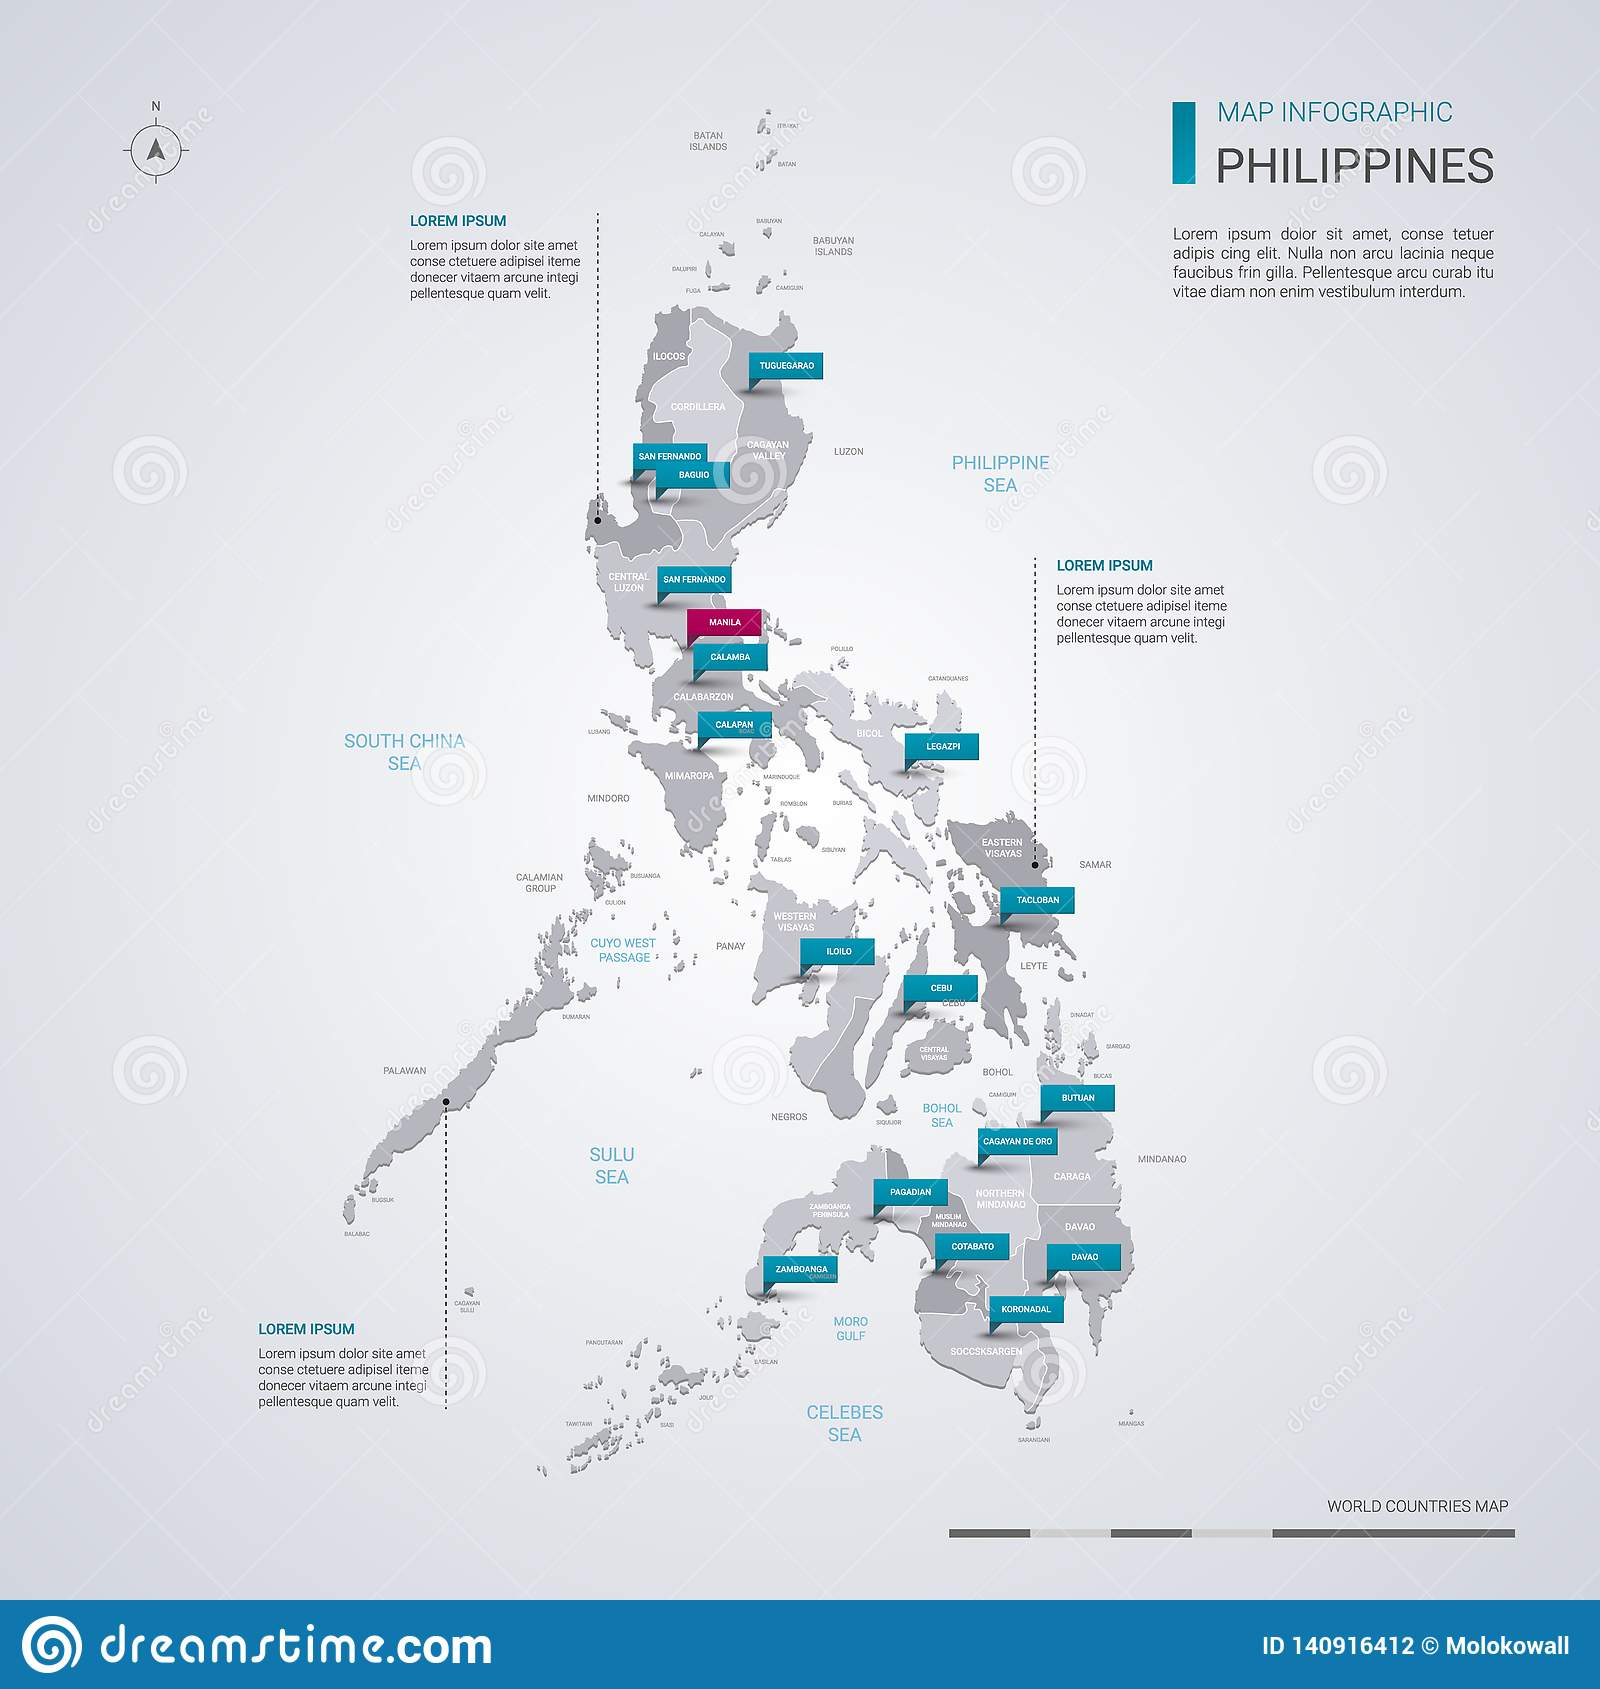 Picture of: Philippines Vector Map With Infographic Elements Pointer Marks Stock Vector Illustration Of Political Land 140916412